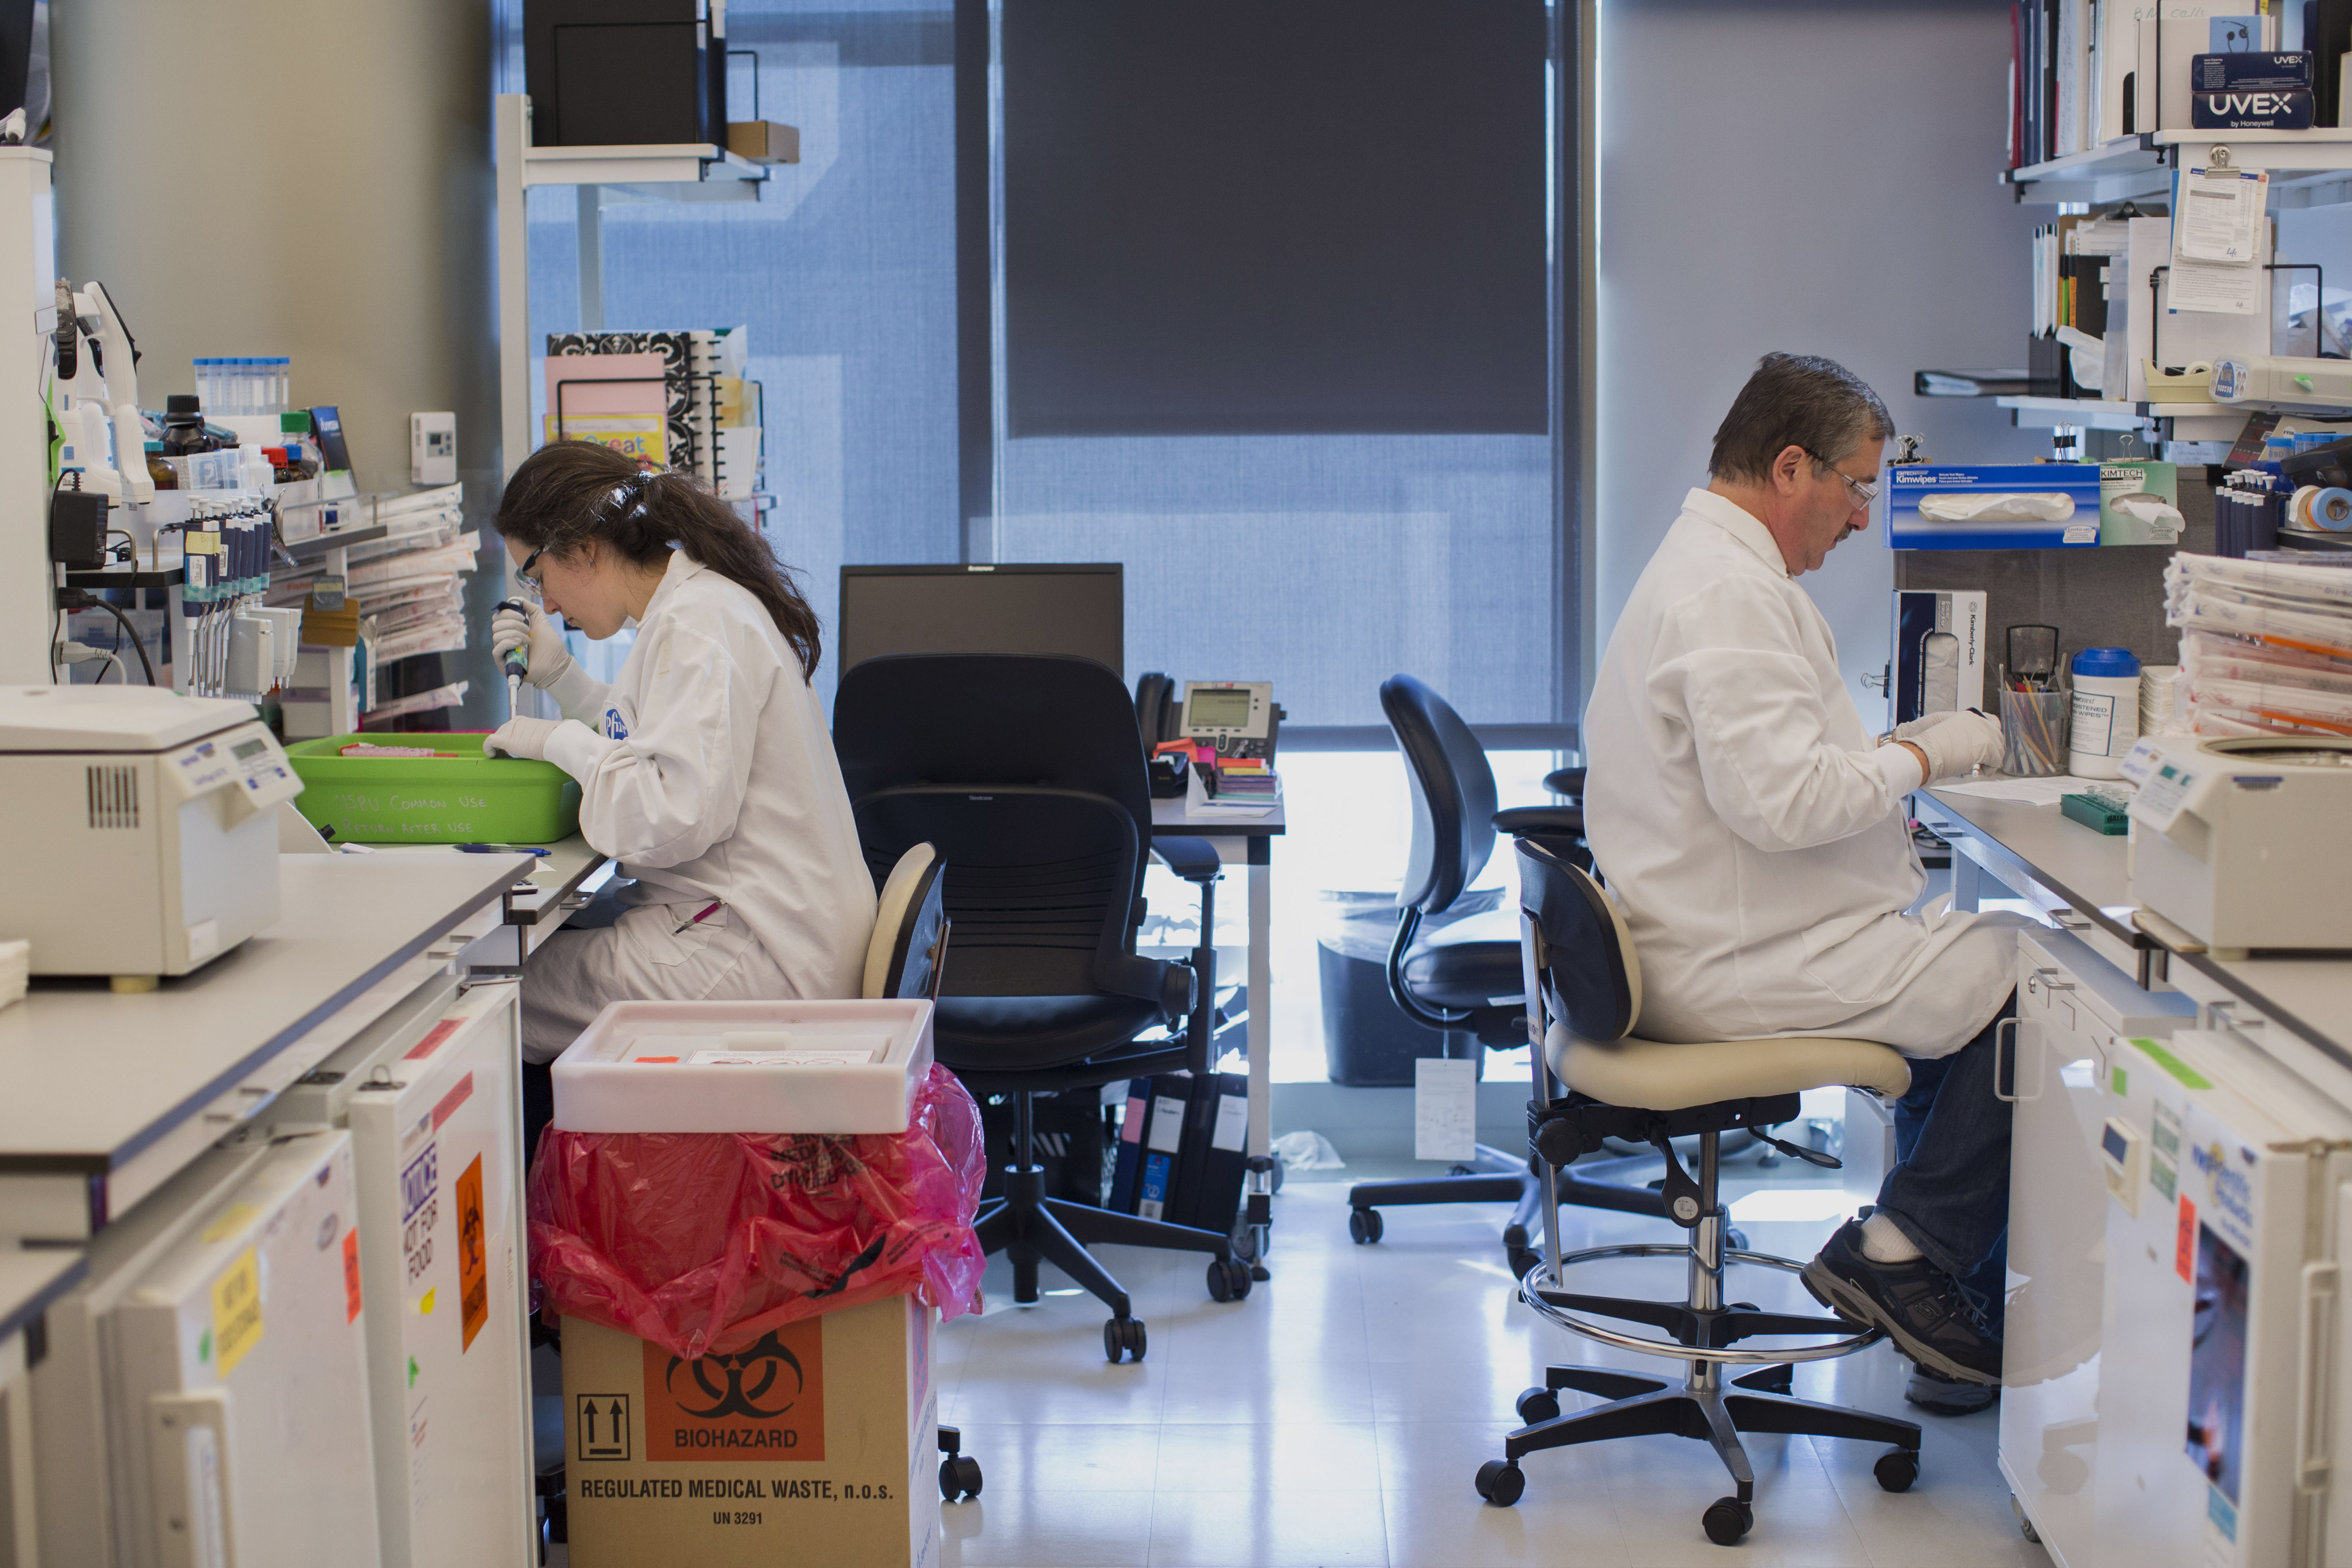 Pfizer employees inside of a laboratory at Pfizer's research and development facility in Cambridge, Massachusetts, U.S., on Monday, Oct. 26, 2015. Photographer: Scott Eisen/Bloomberg *** Local Caption ***